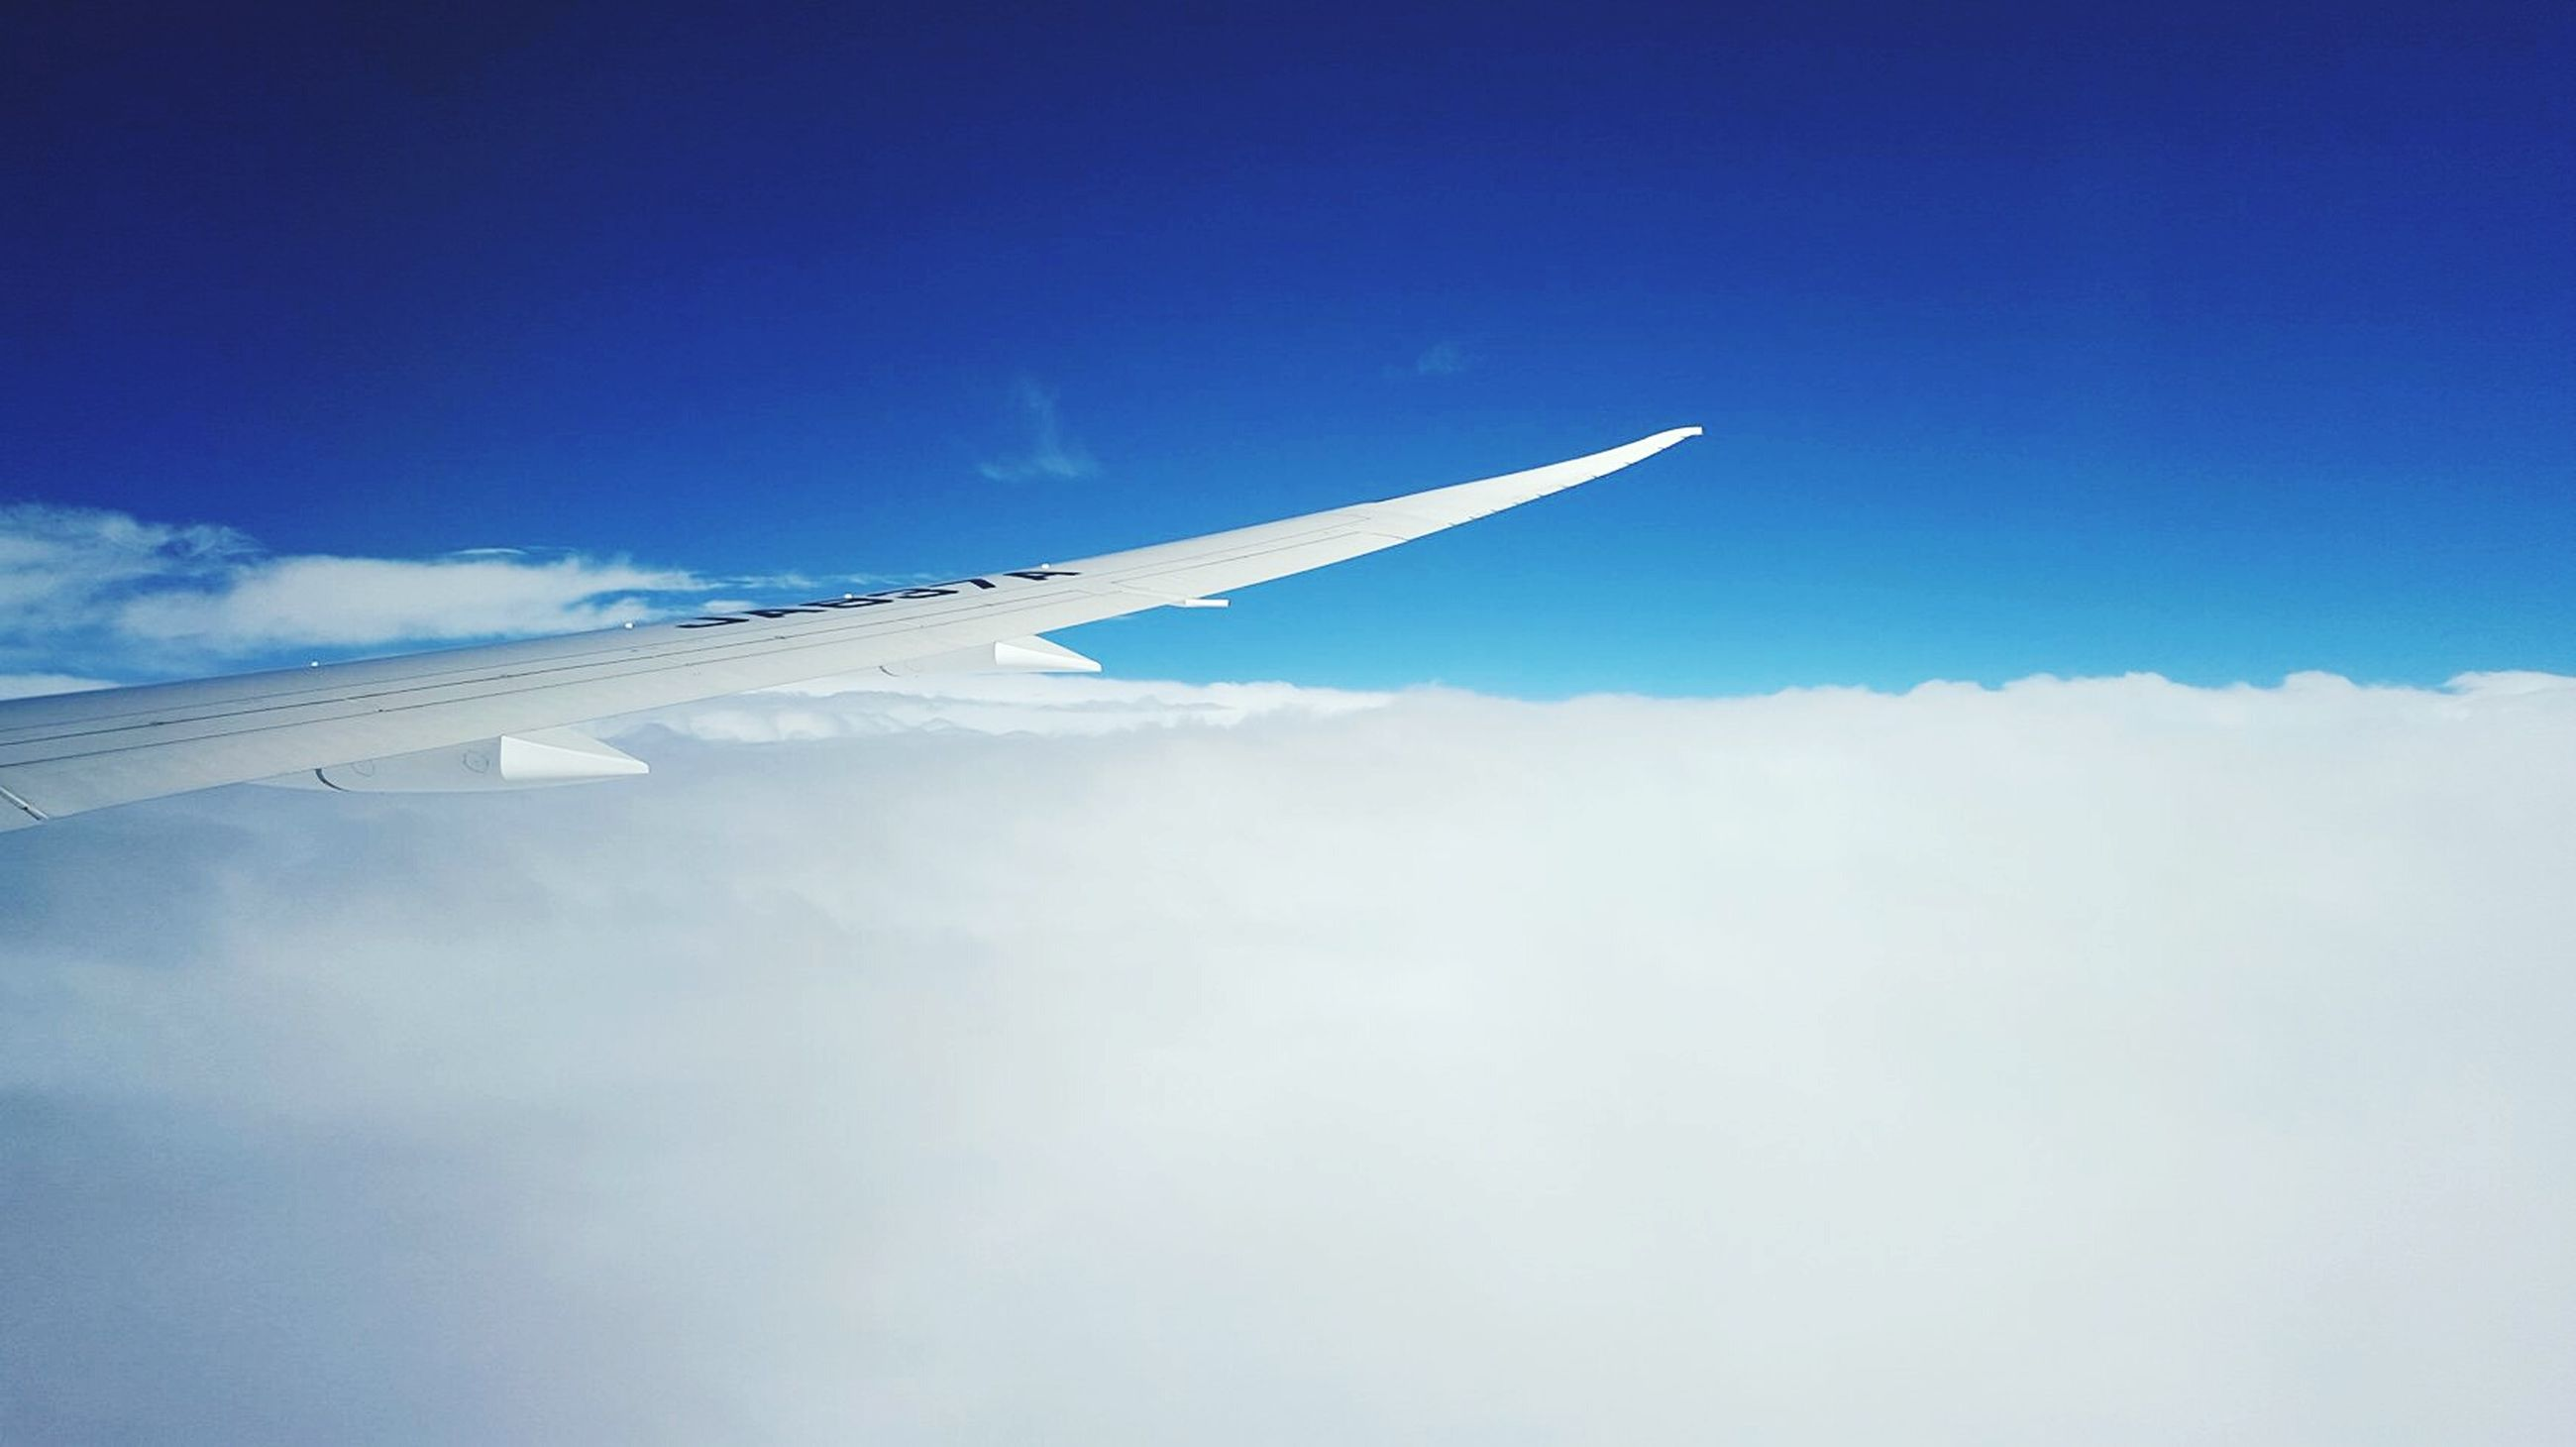 blue, airplane, flying, air vehicle, sky, transportation, low angle view, cloud - sky, mode of transport, aircraft wing, travel, vapor trail, mid-air, cloud, part of, cropped, journey, day, nature, on the move